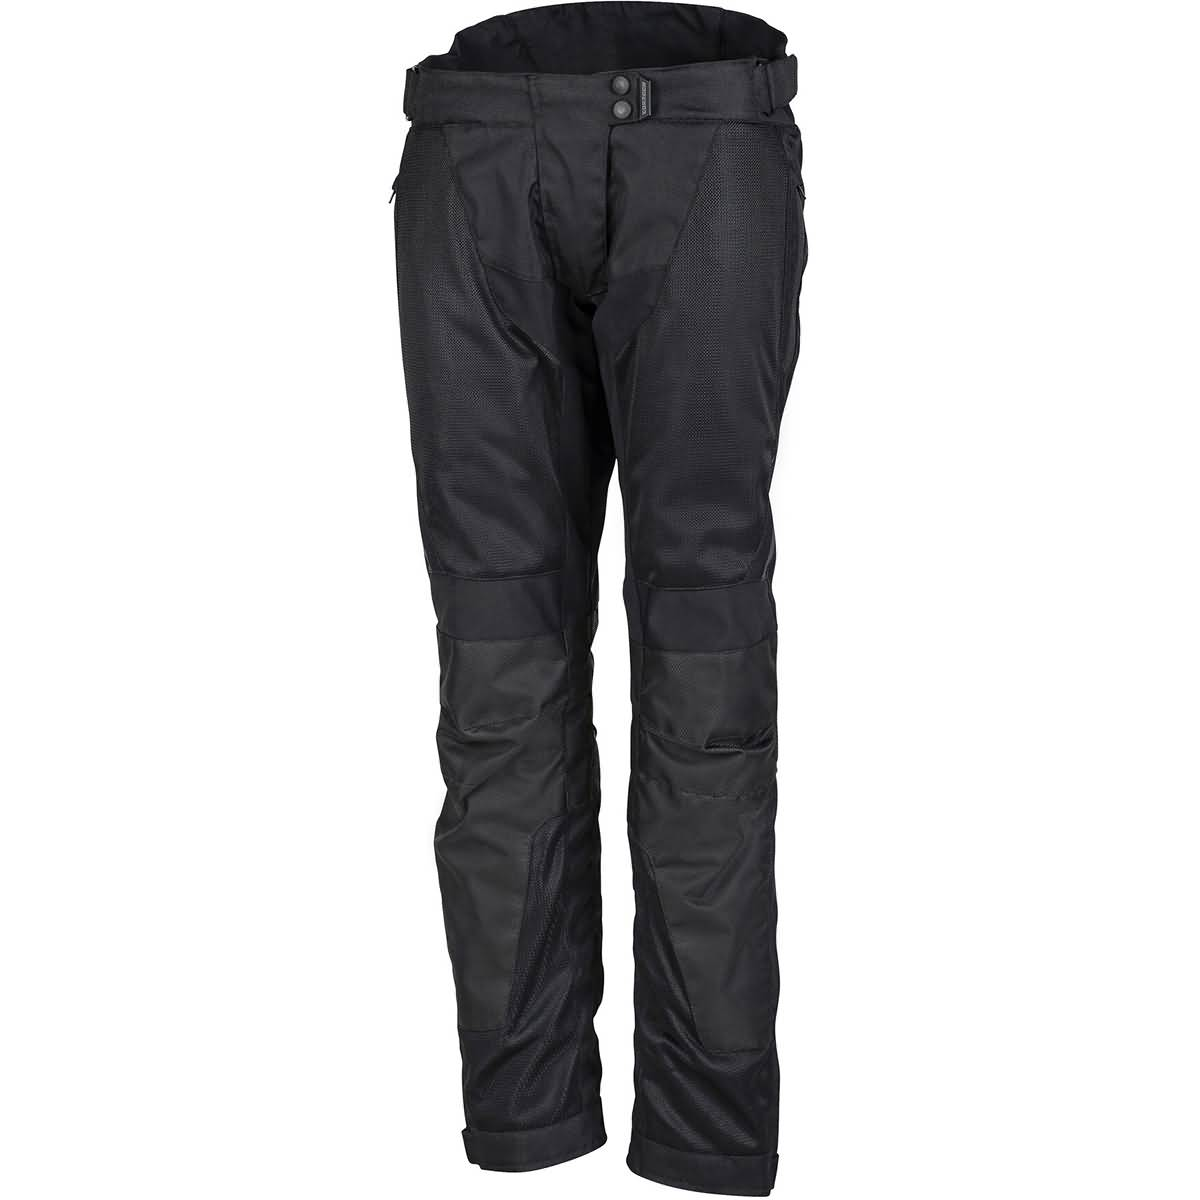 Cortech Hyper Flo Air women's Street Pants-8994